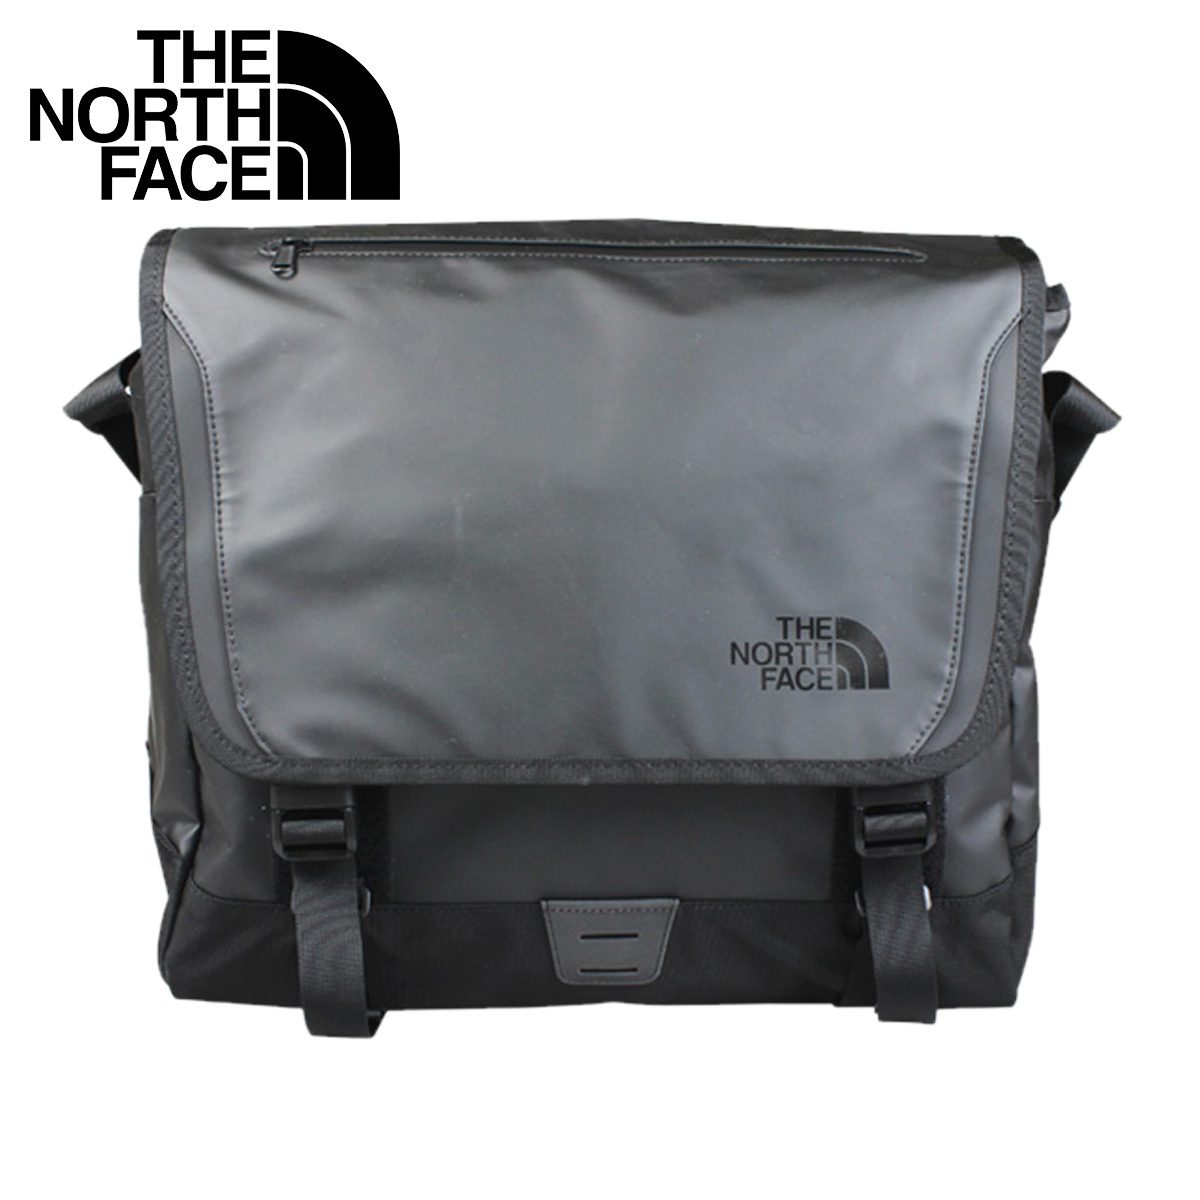 9ea3ae0f5c93  SOLD OUT  the north face THE NORTH FACE Messenger bag A7KU black BASECAMP  MESSENGER MEDIUM mens